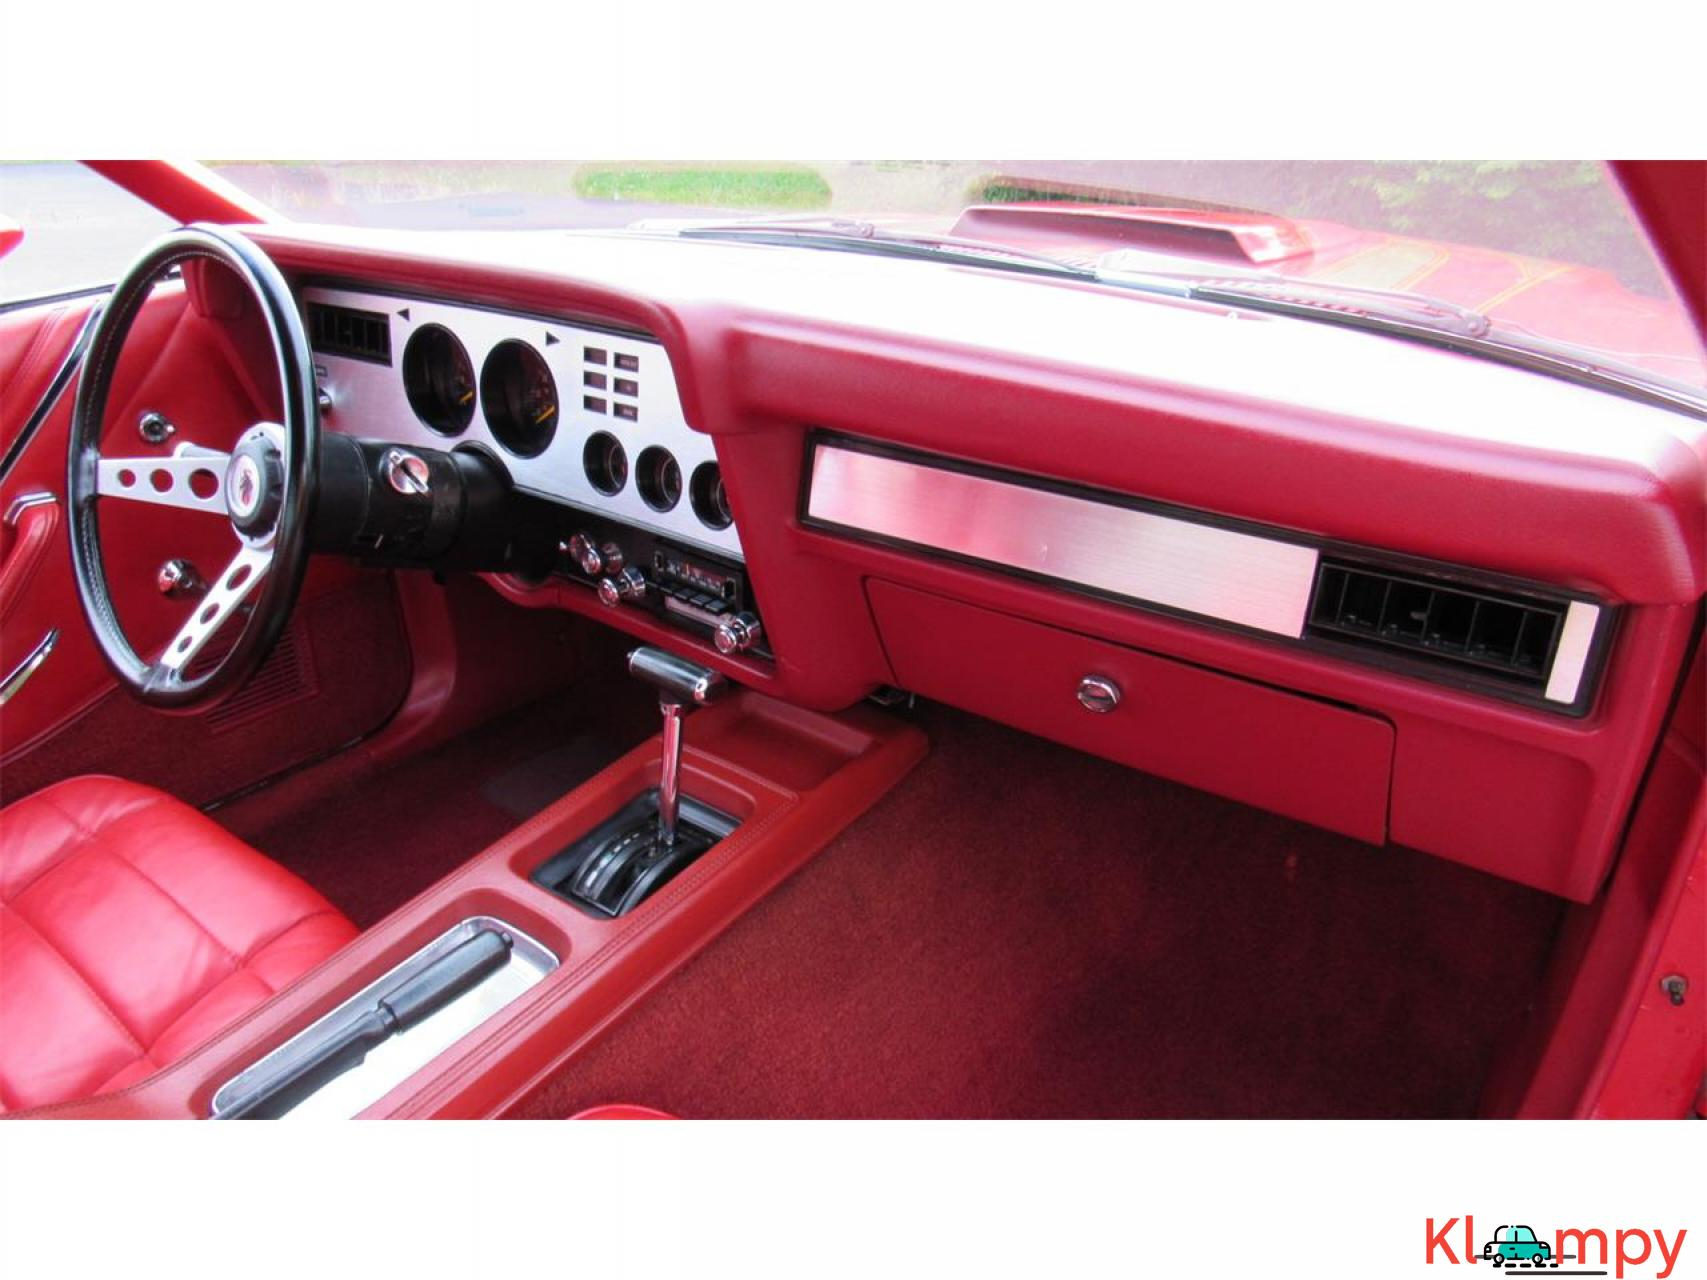 1978 Ford Mustang 302ci V8 Red - 12/17